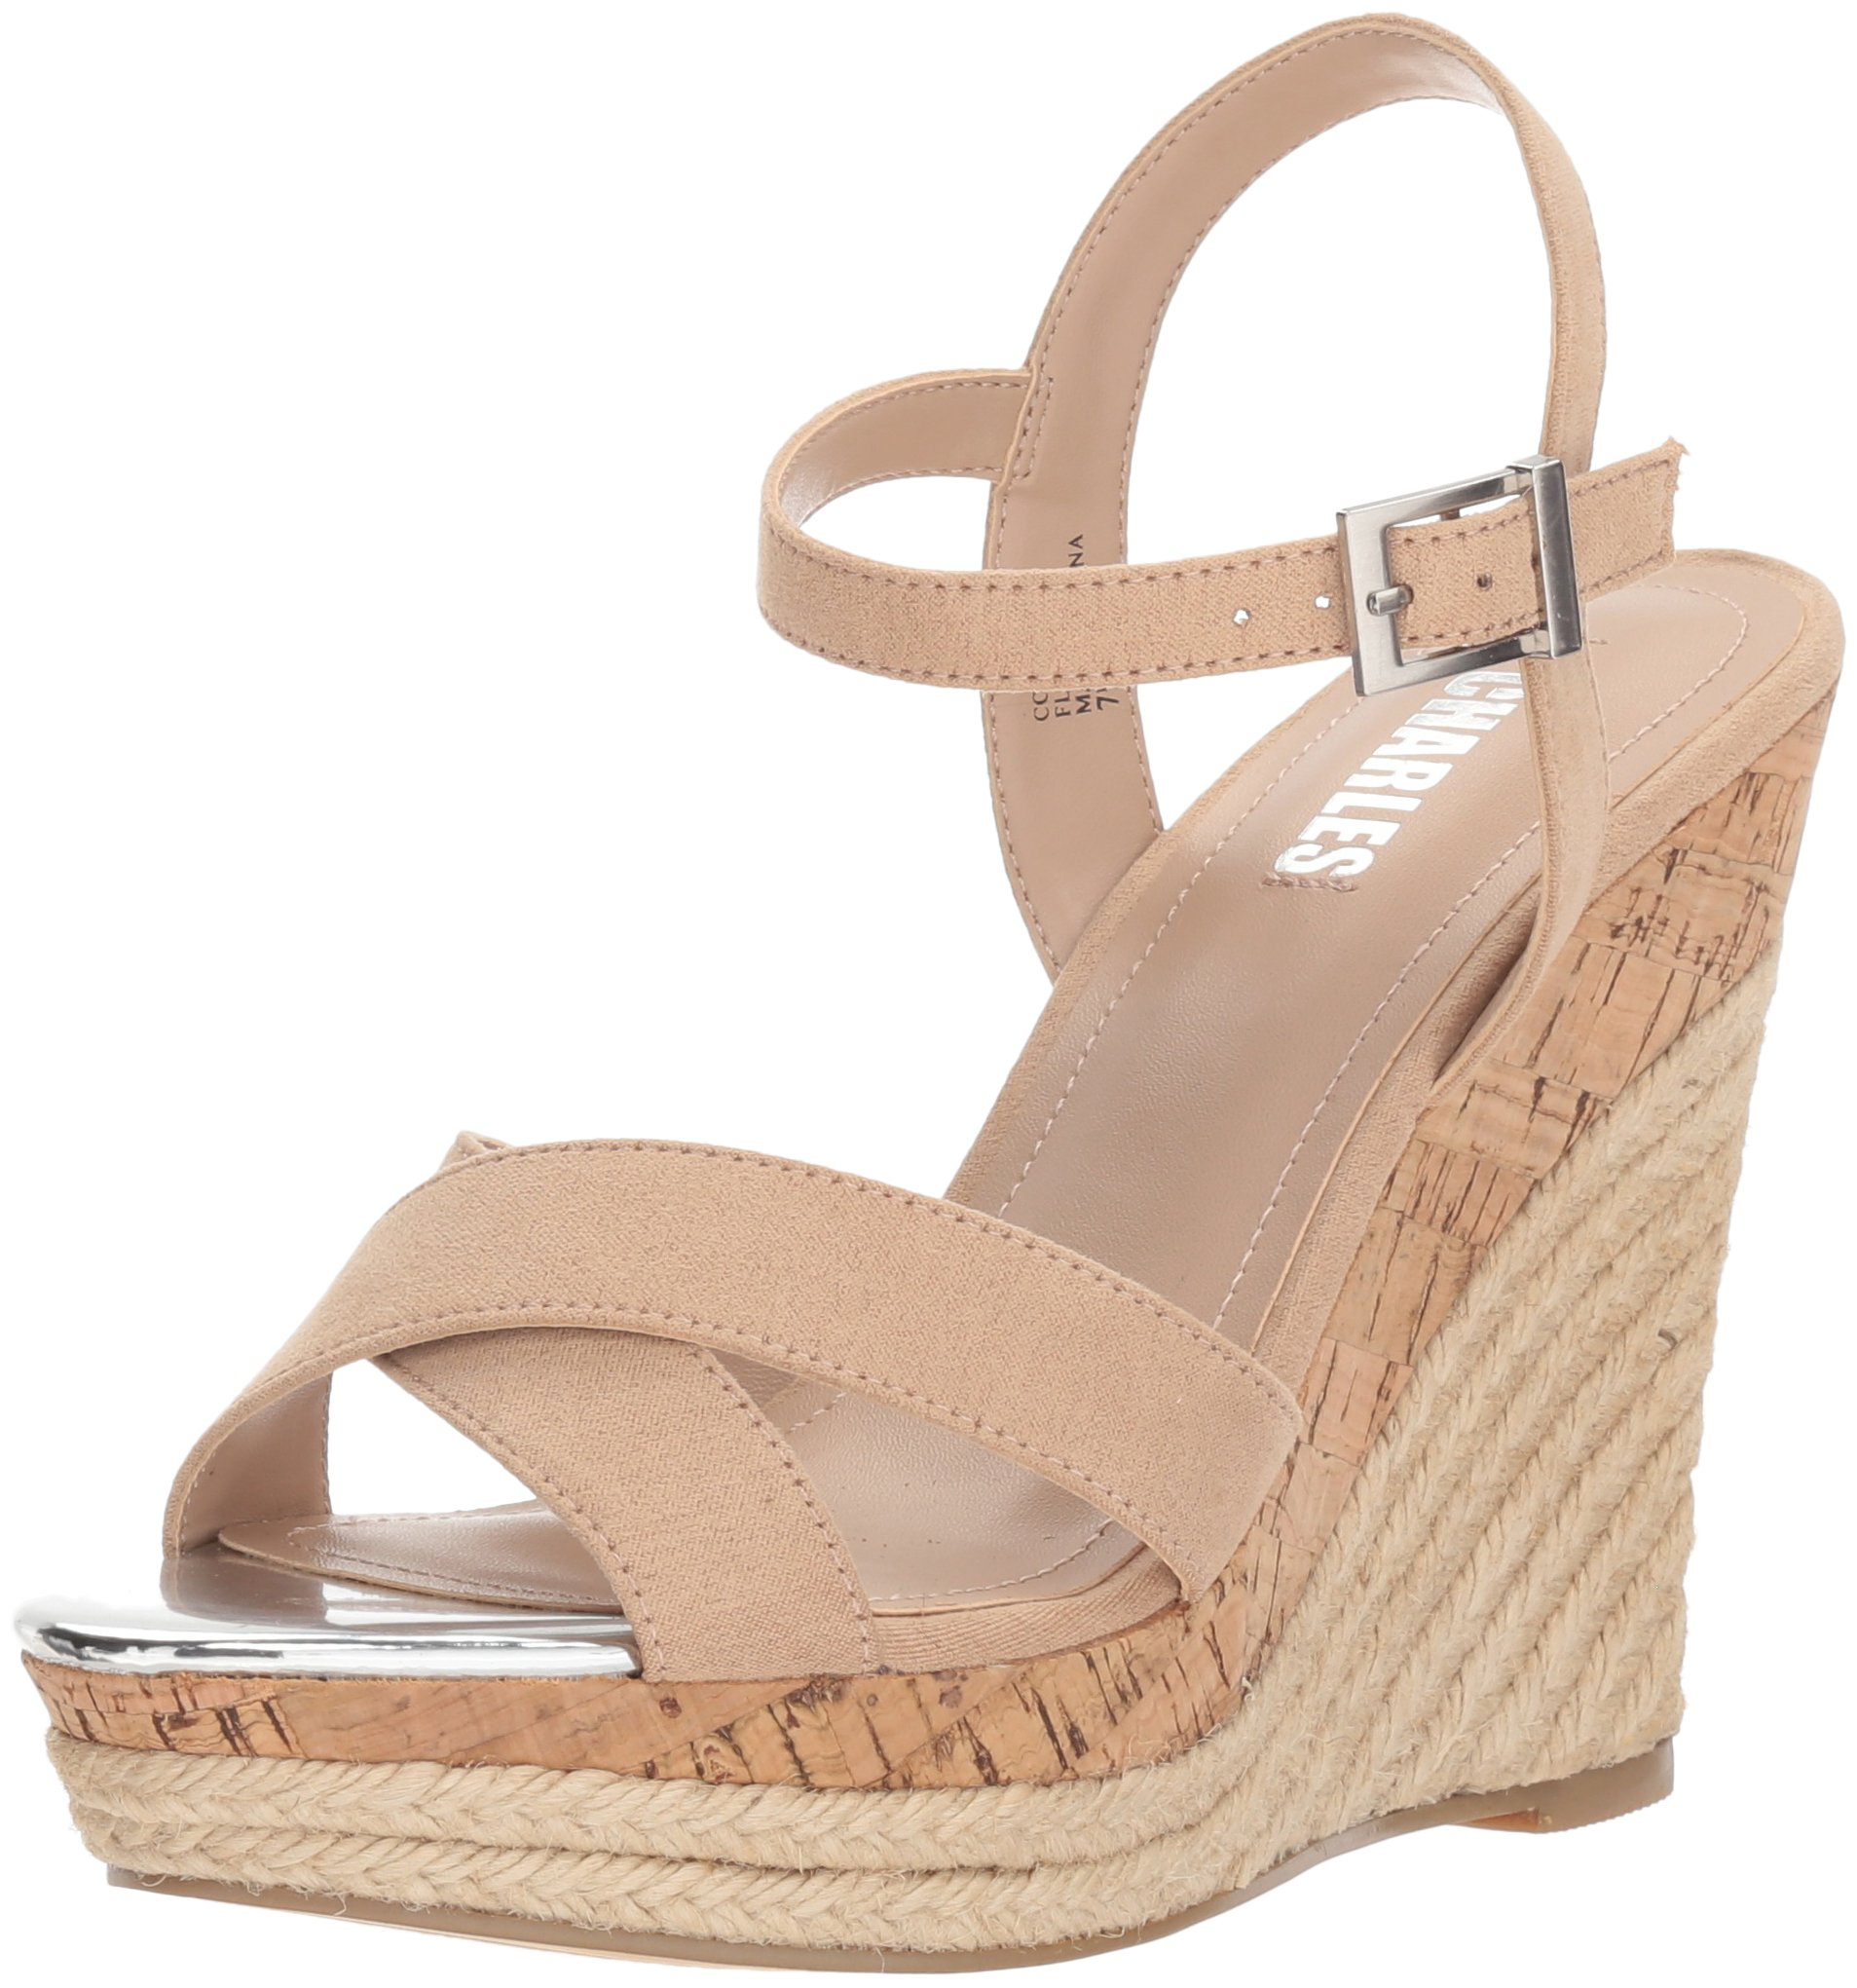 Style by Charles David Women's Annex Wedge Sandal, Nude, 8.5 M US